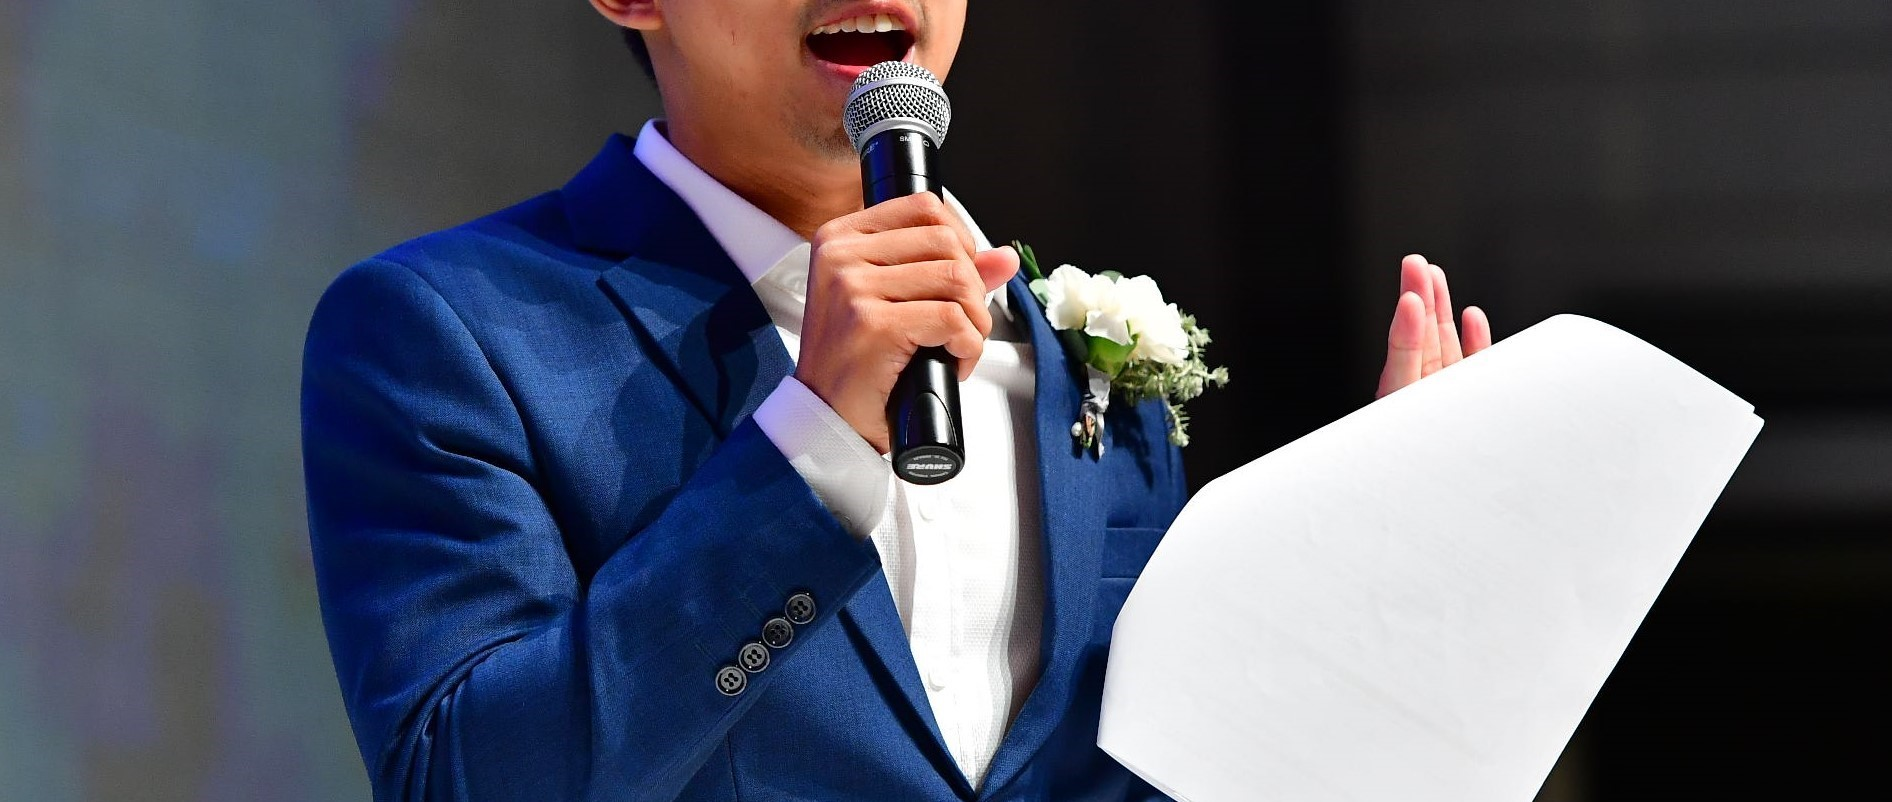 professional emcee for wedding